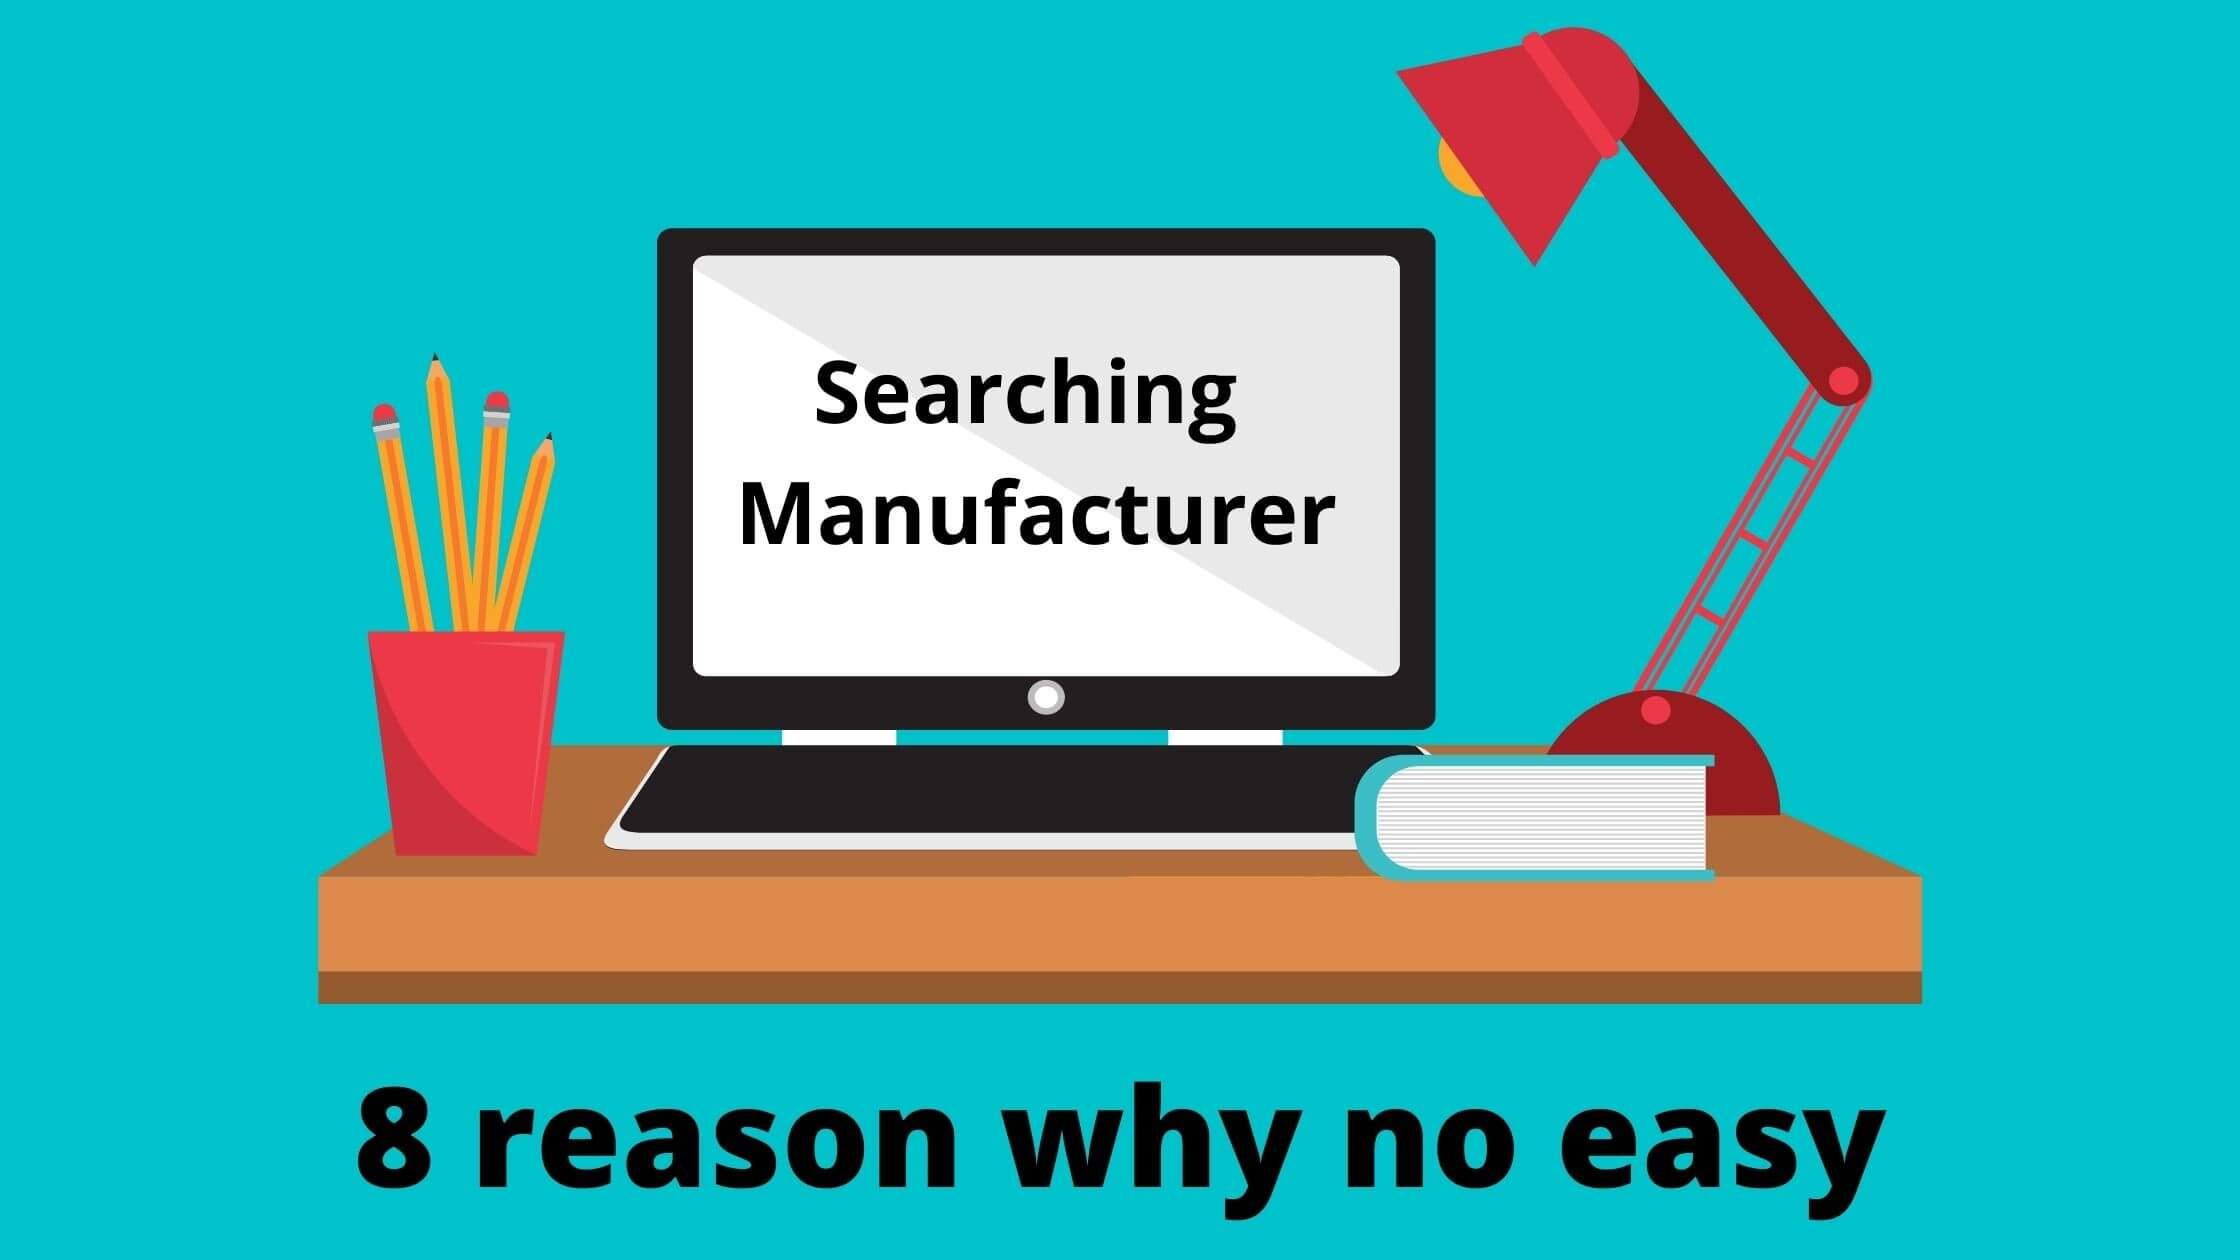 Searching Manufacturer